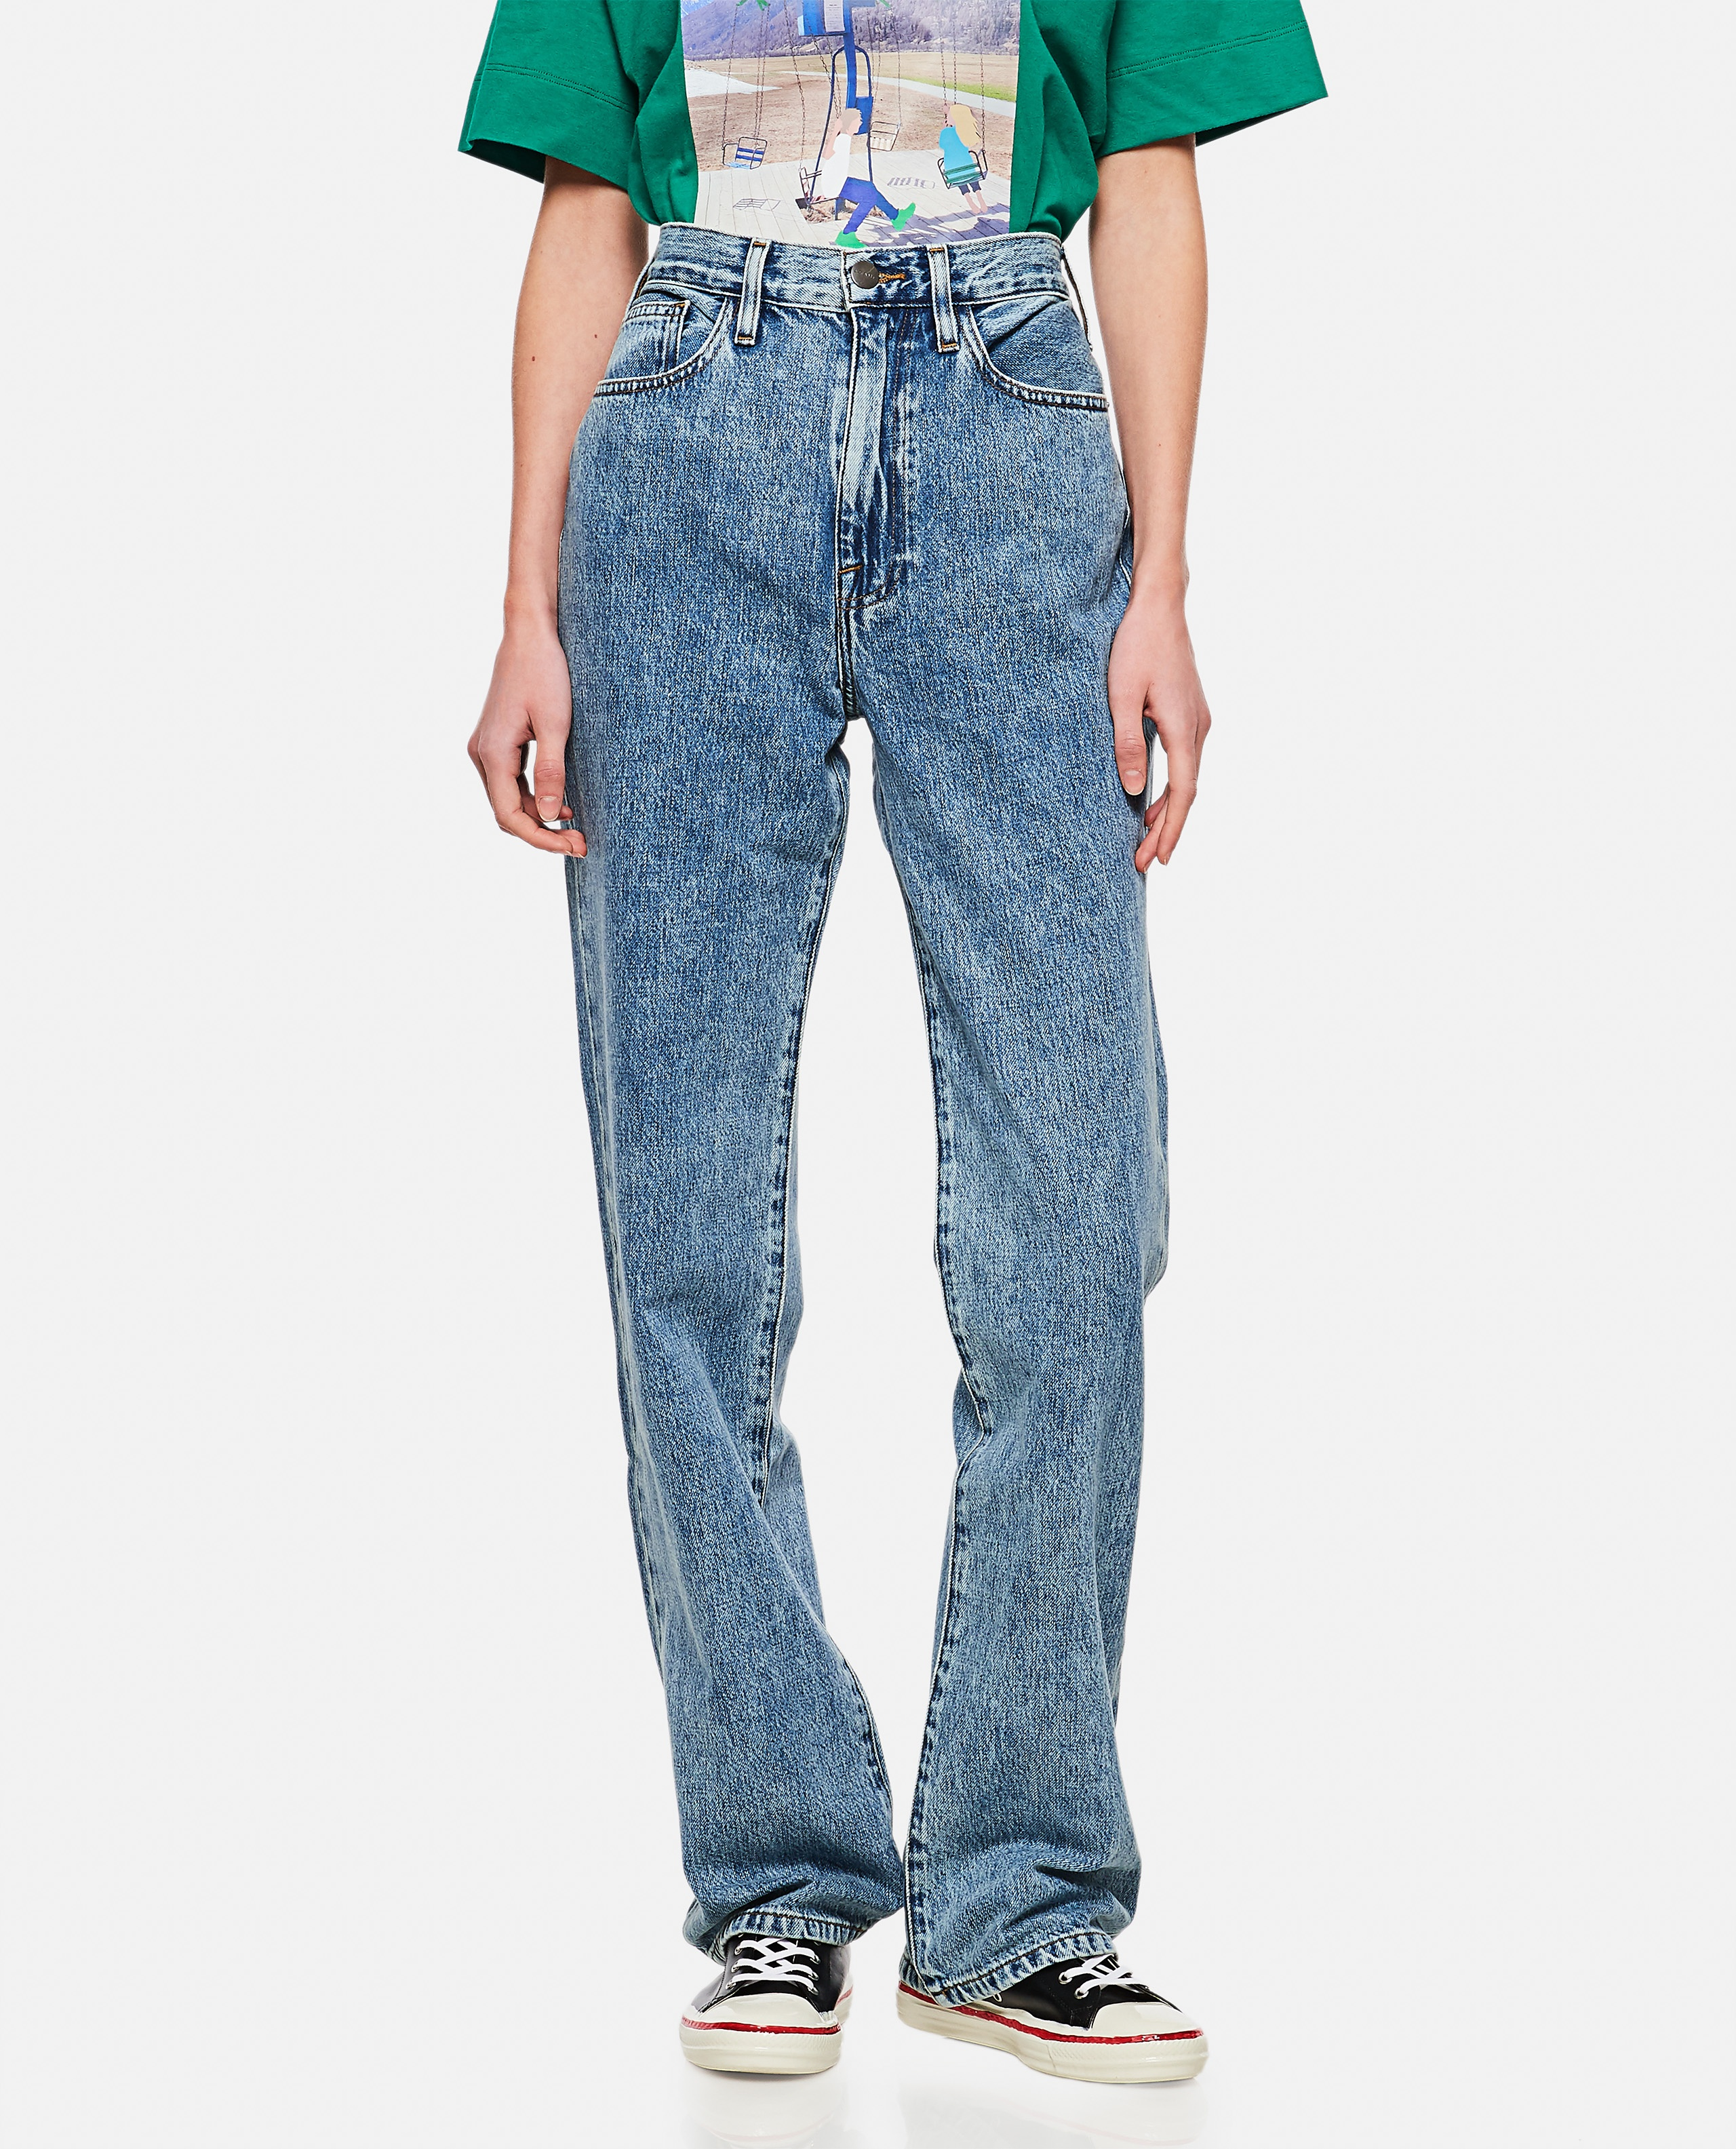 Le Jane high-waisted jeans Donna Frame 000286310042252 1